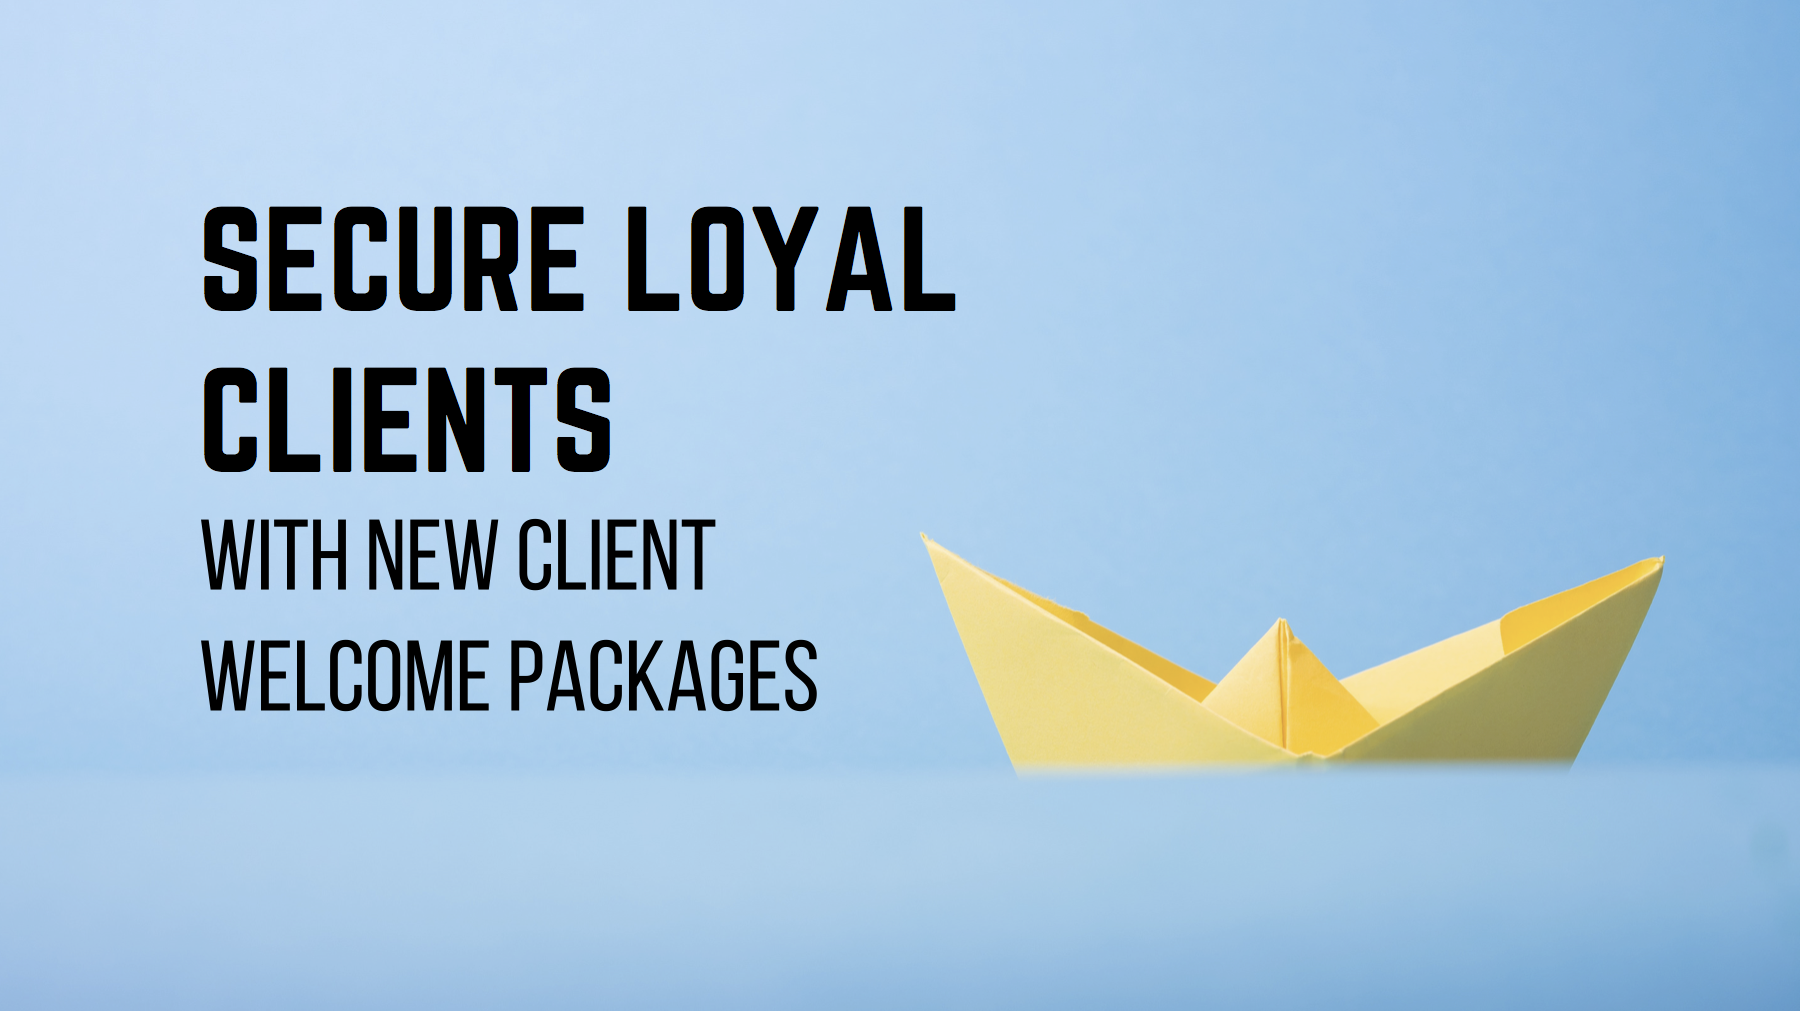 Secure Loyal Clients With New Client Welcome Packages